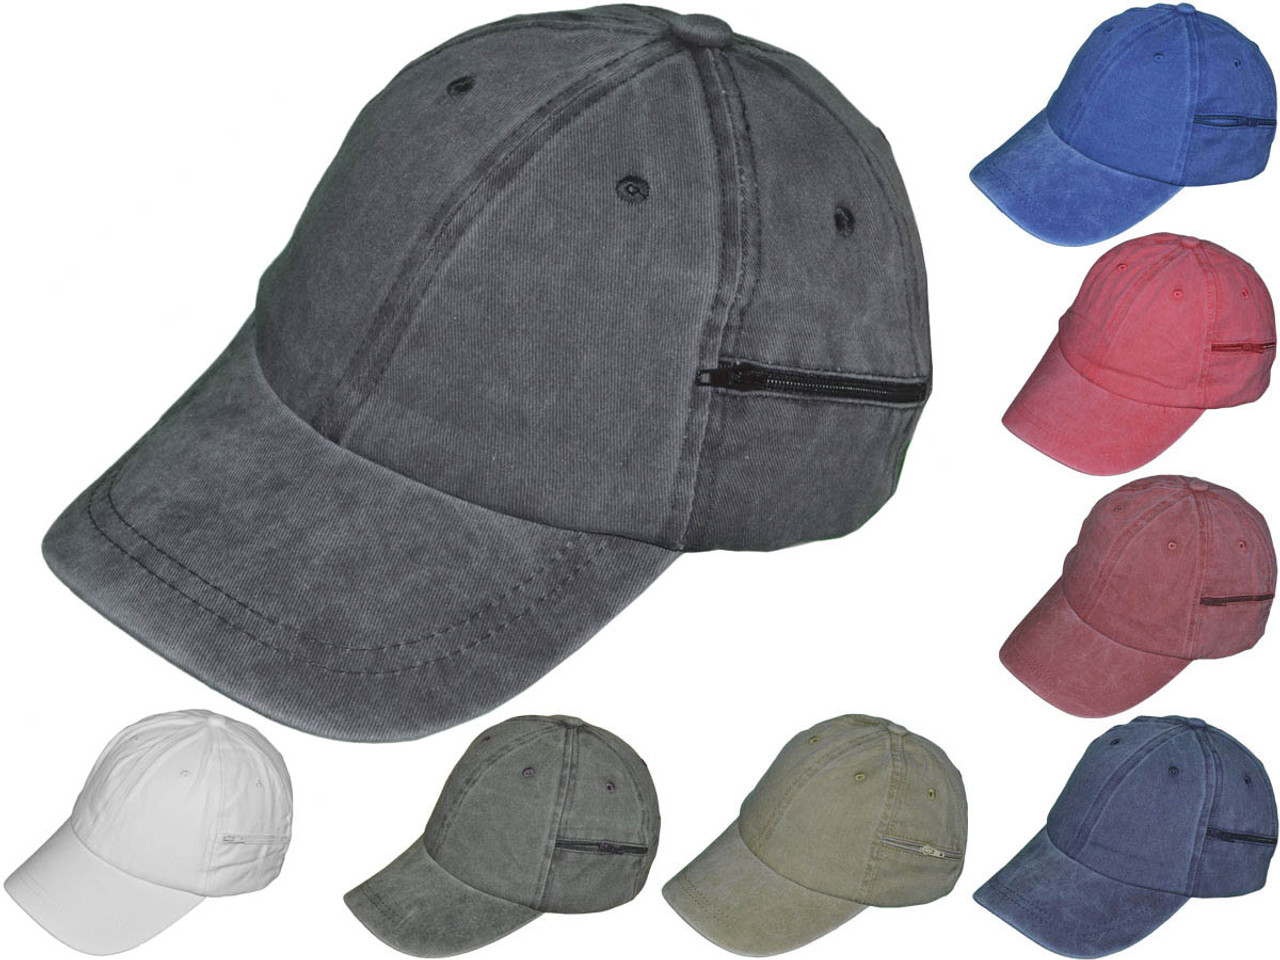 Blank Dad Hats with Zipper Pocket - BK Caps Unisex Brushed Cotton Polo  Unstructured Low Profile a82ee42c2899